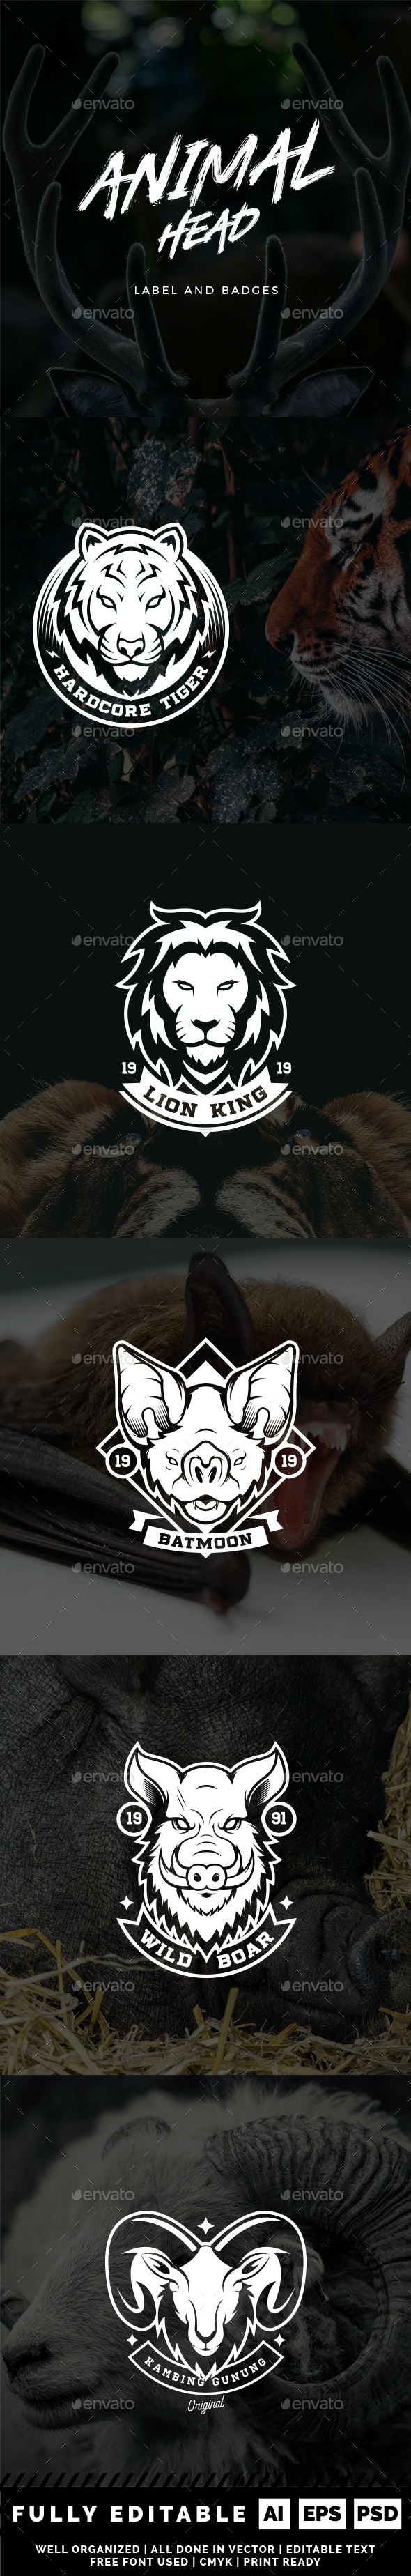 Animal Head Label and Badges - Badges & Stickers Web Elements